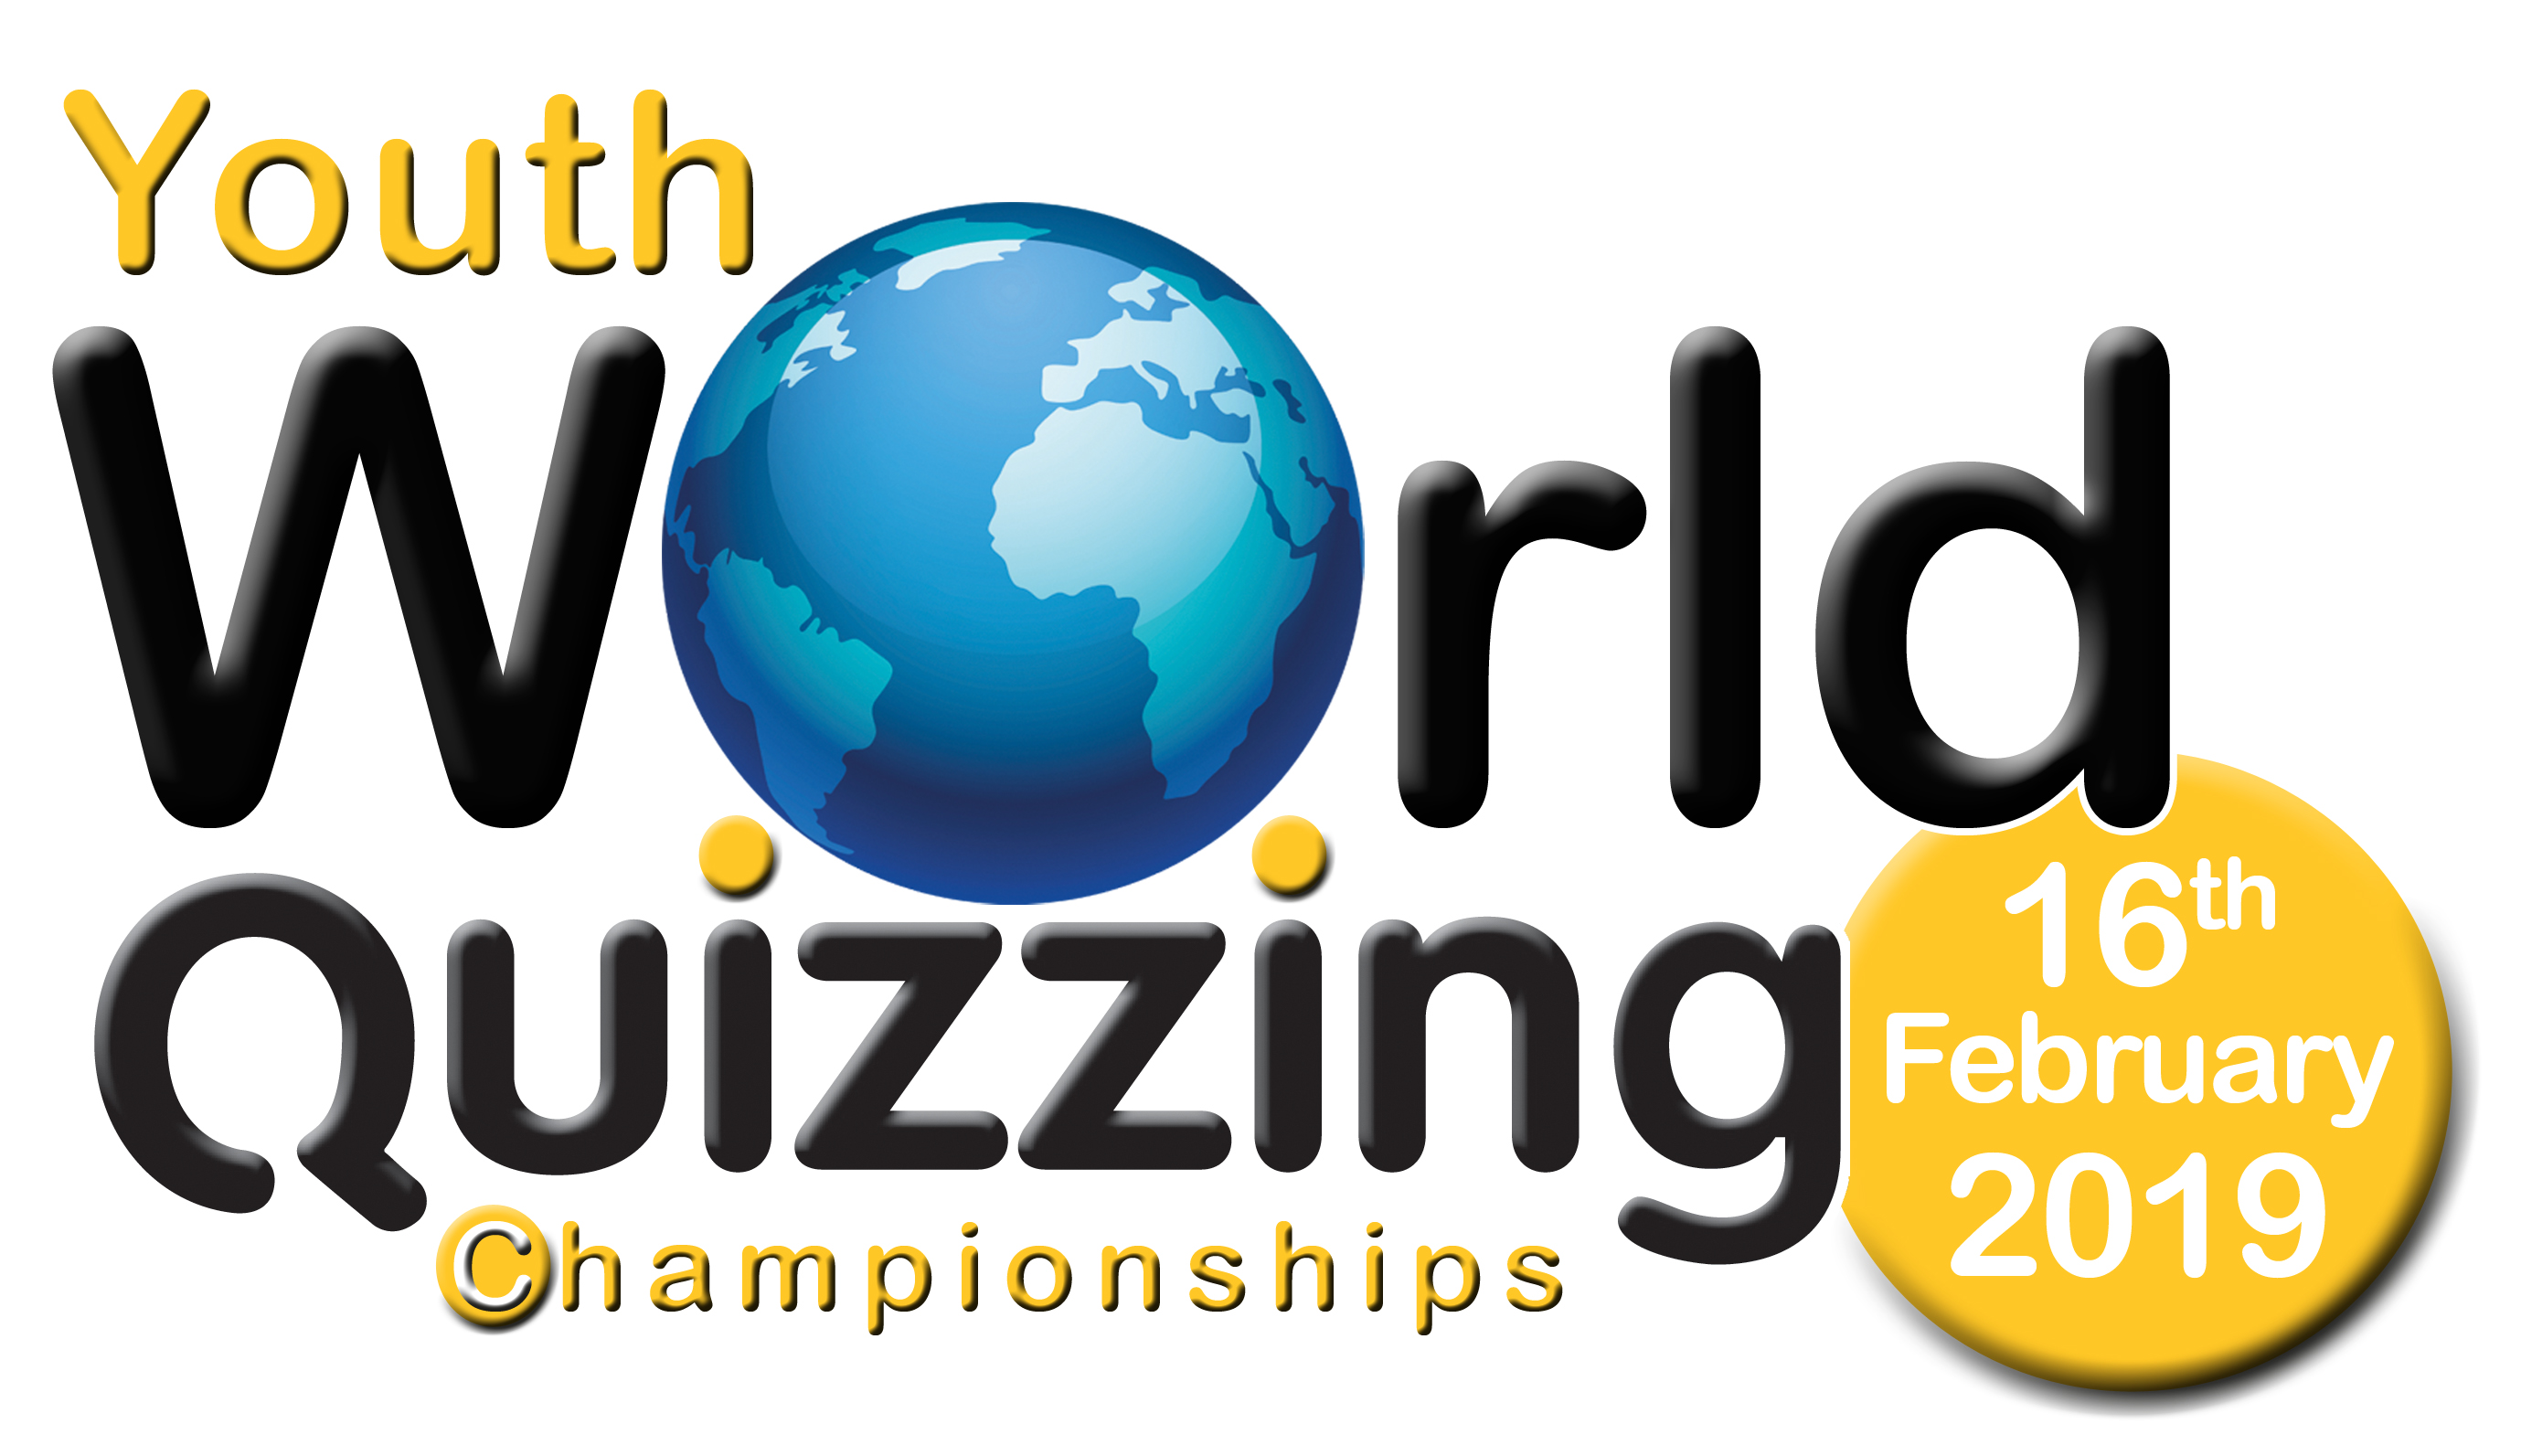 Youth World Quizzing Championships